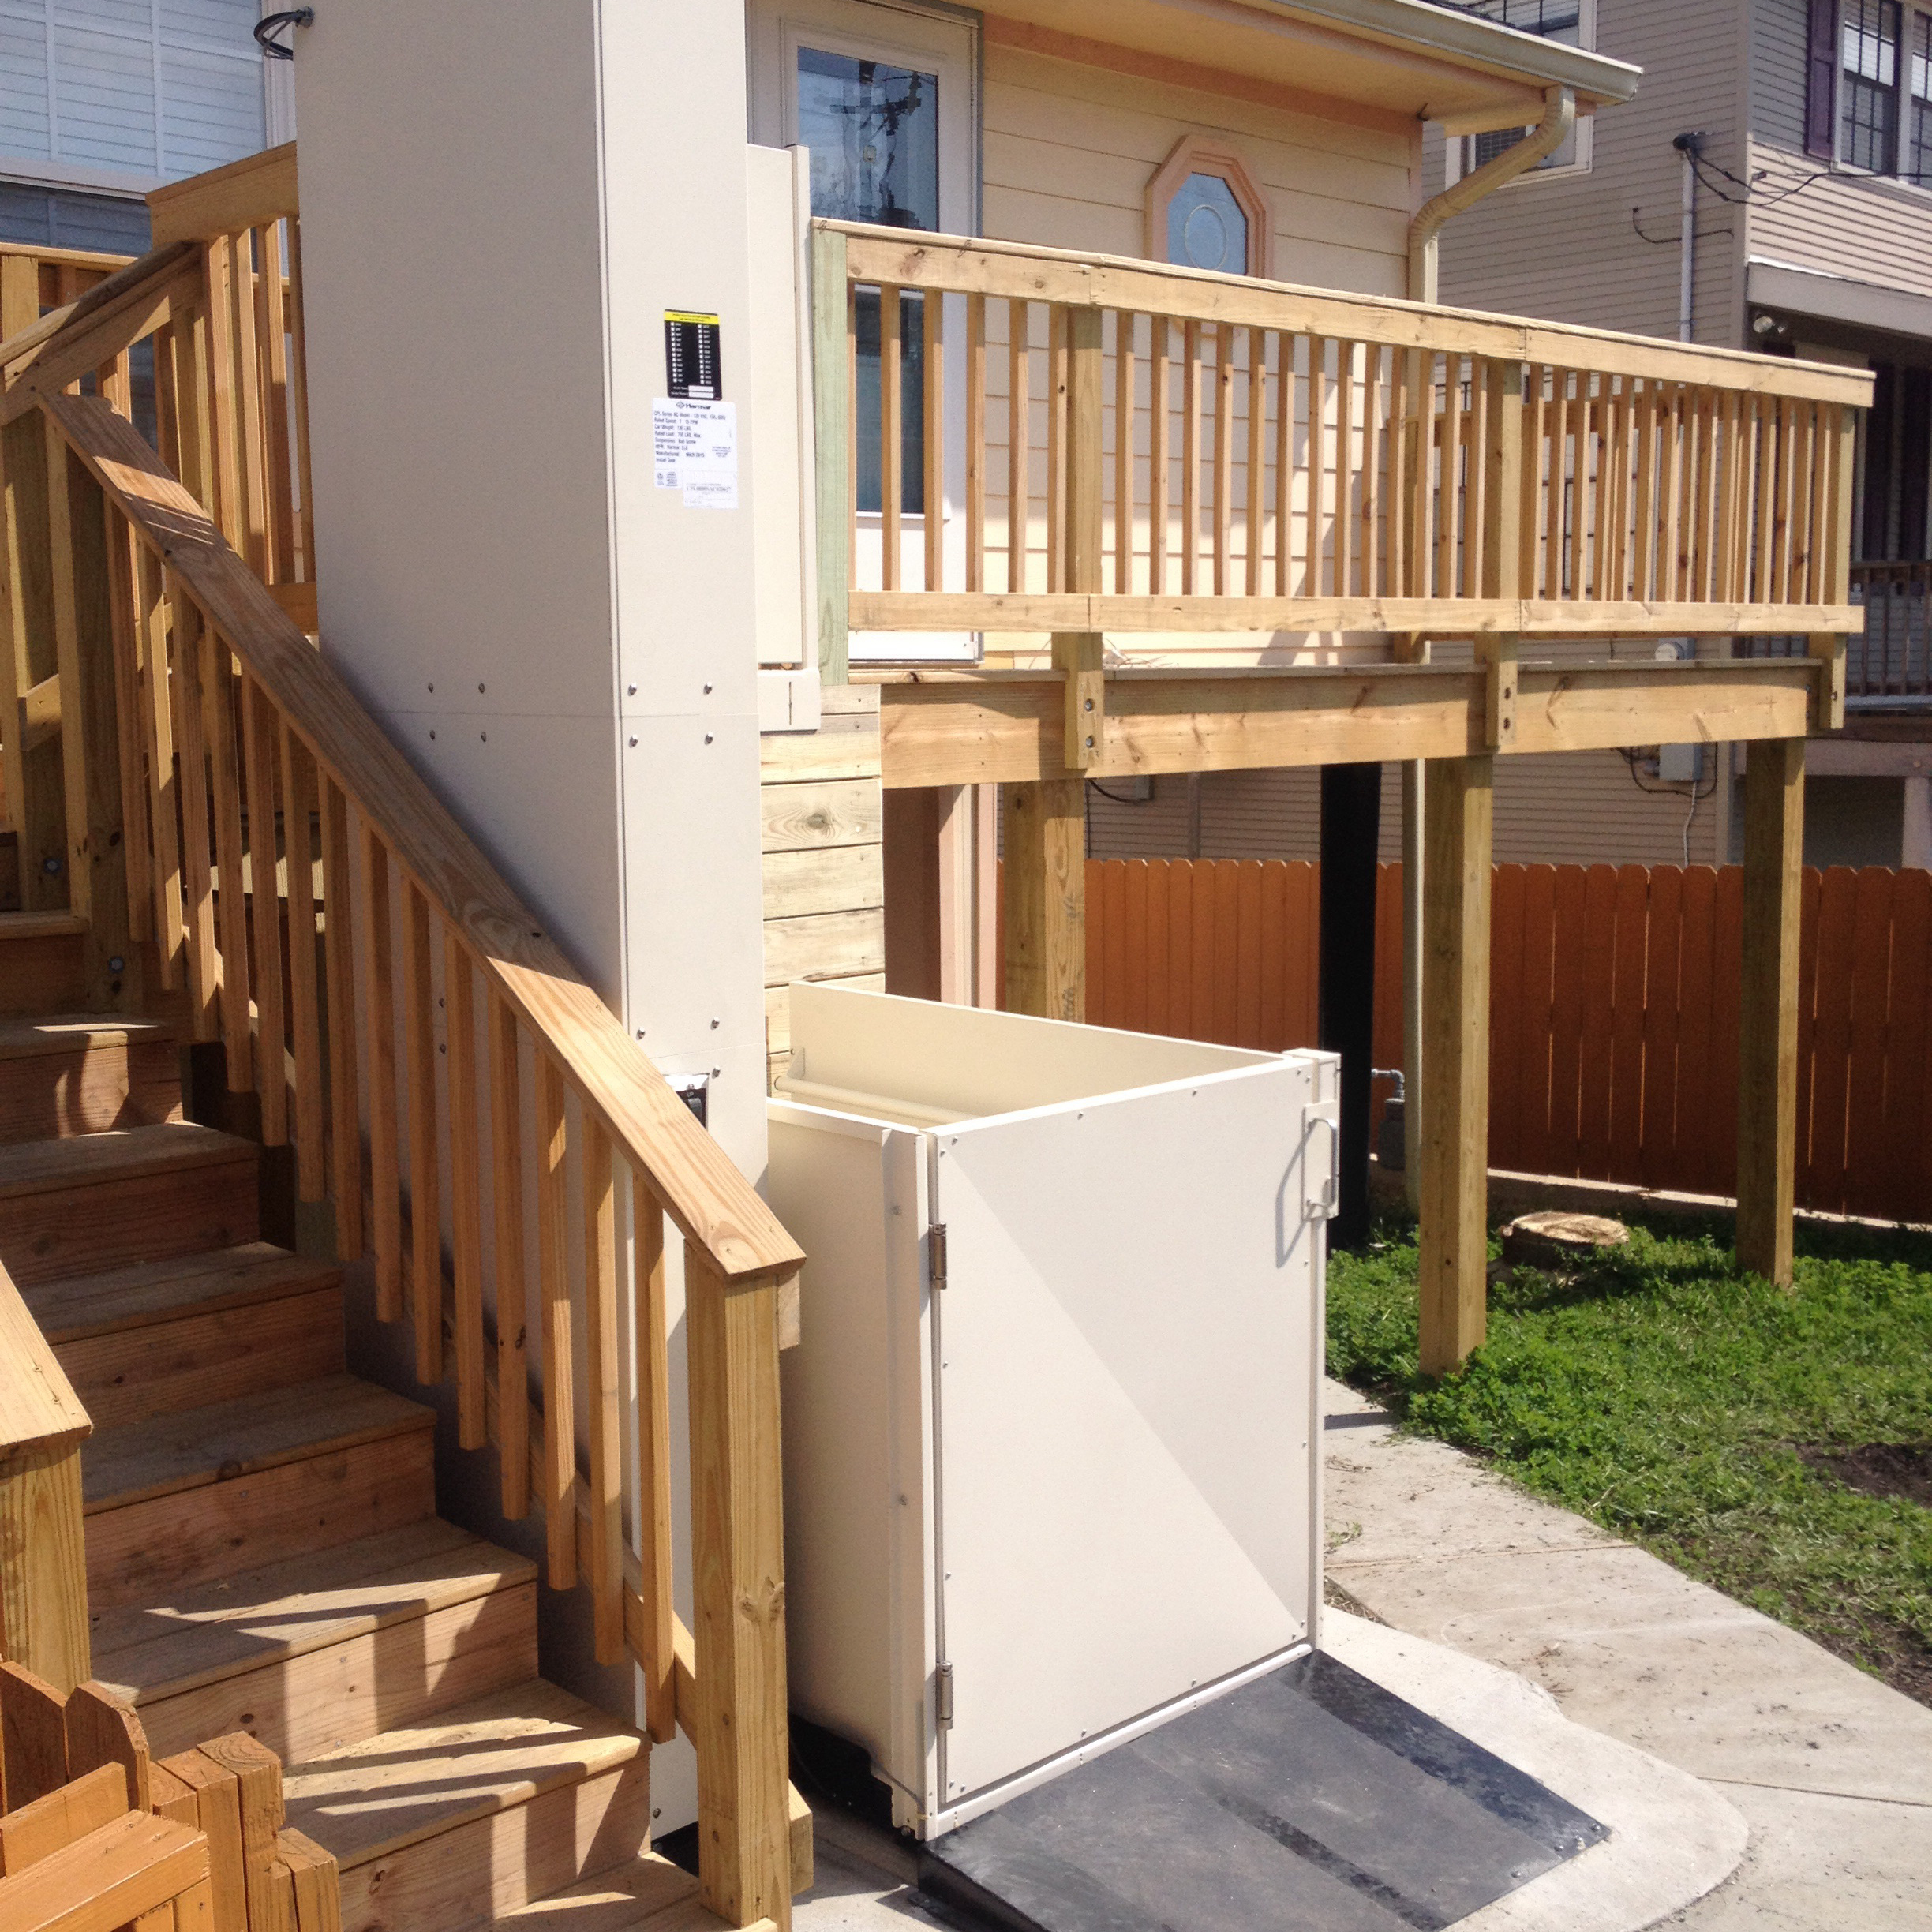 home lifts extended platform lift wheelchair residential porch northside living gallery installed services chicago by ehls on of